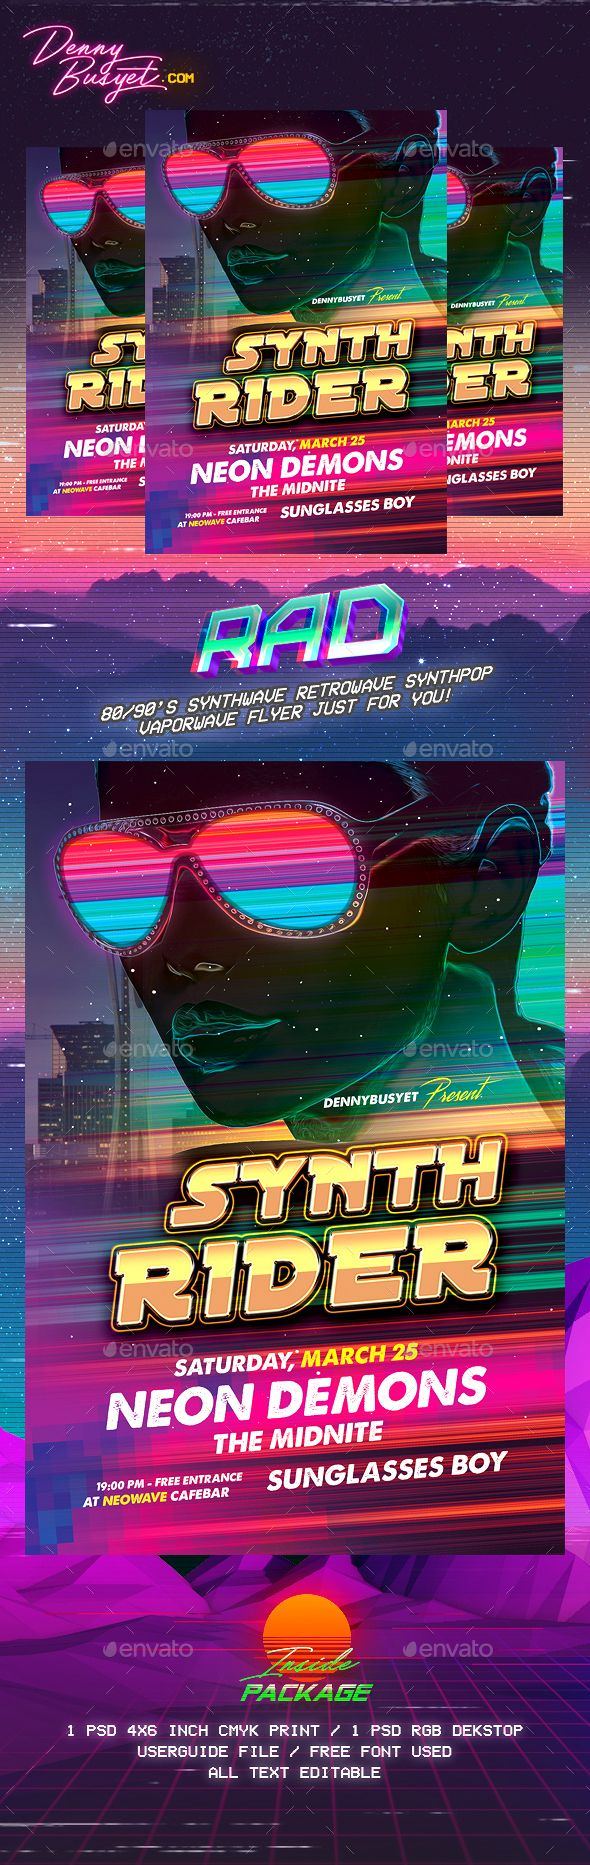 80s poster design - Synth Rider Synthwave Flyer Template